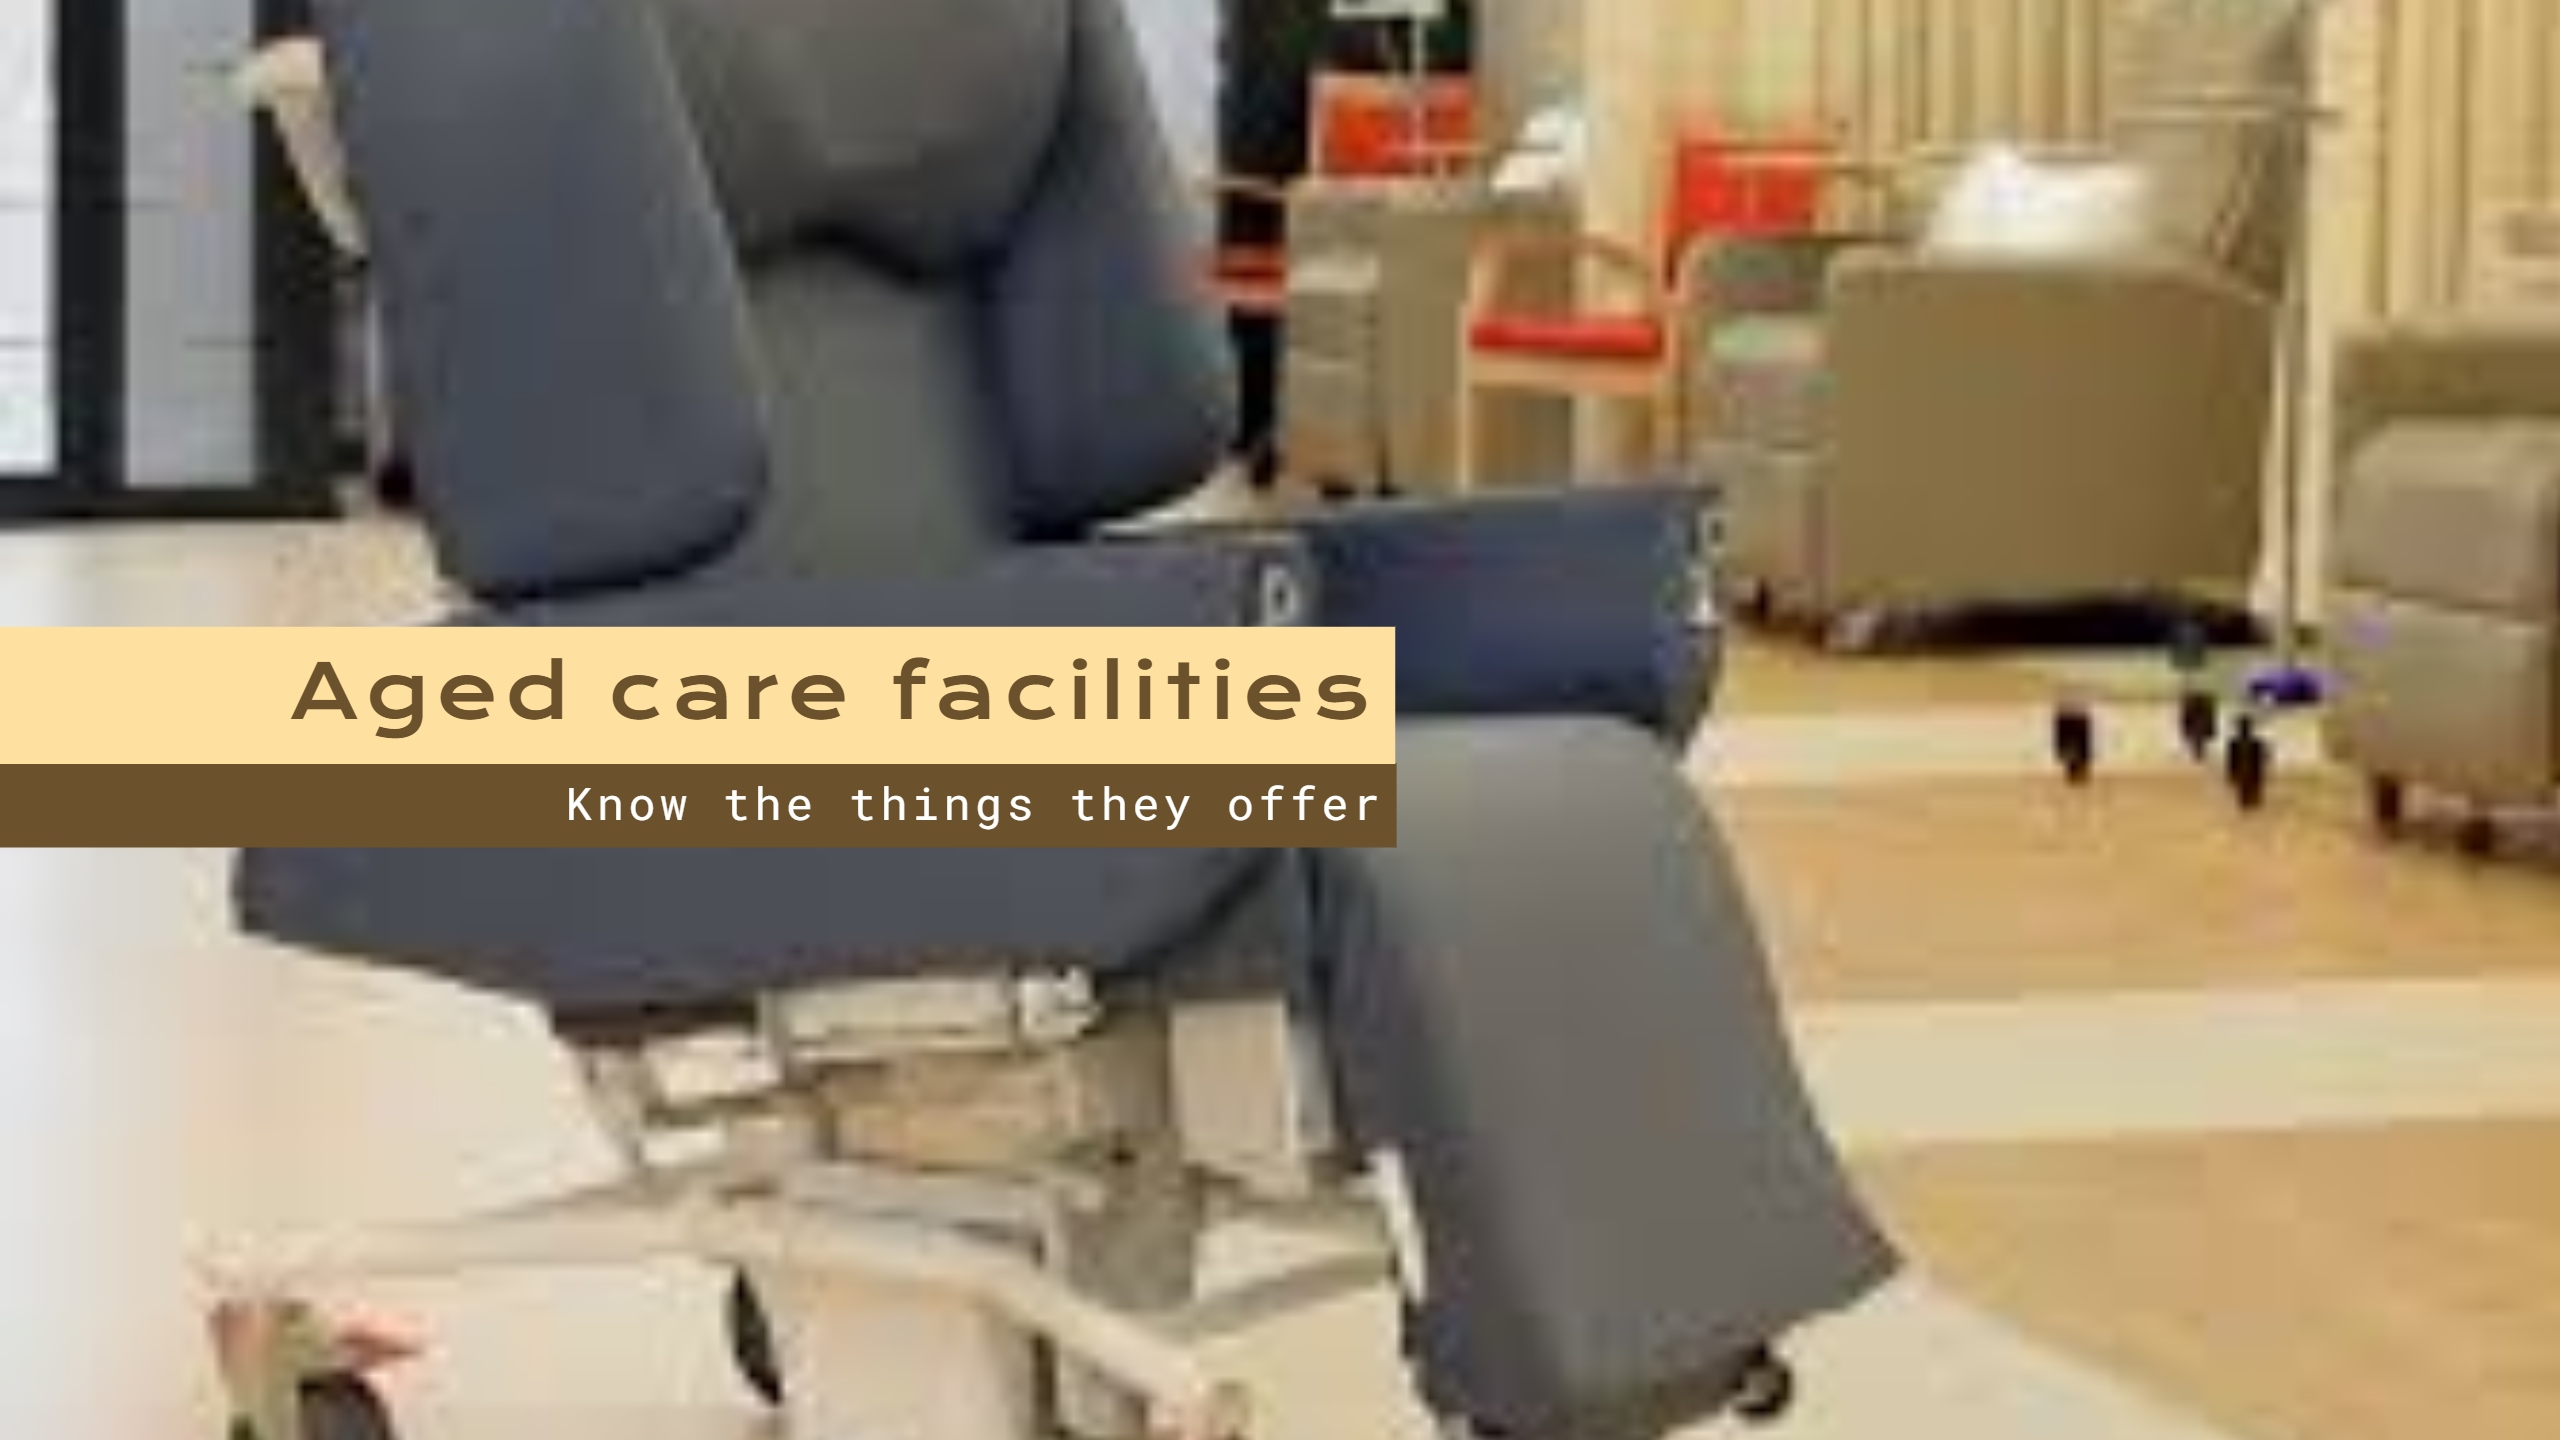 aged care facilities - comfortable chairs for the elders in the multiple colors are given